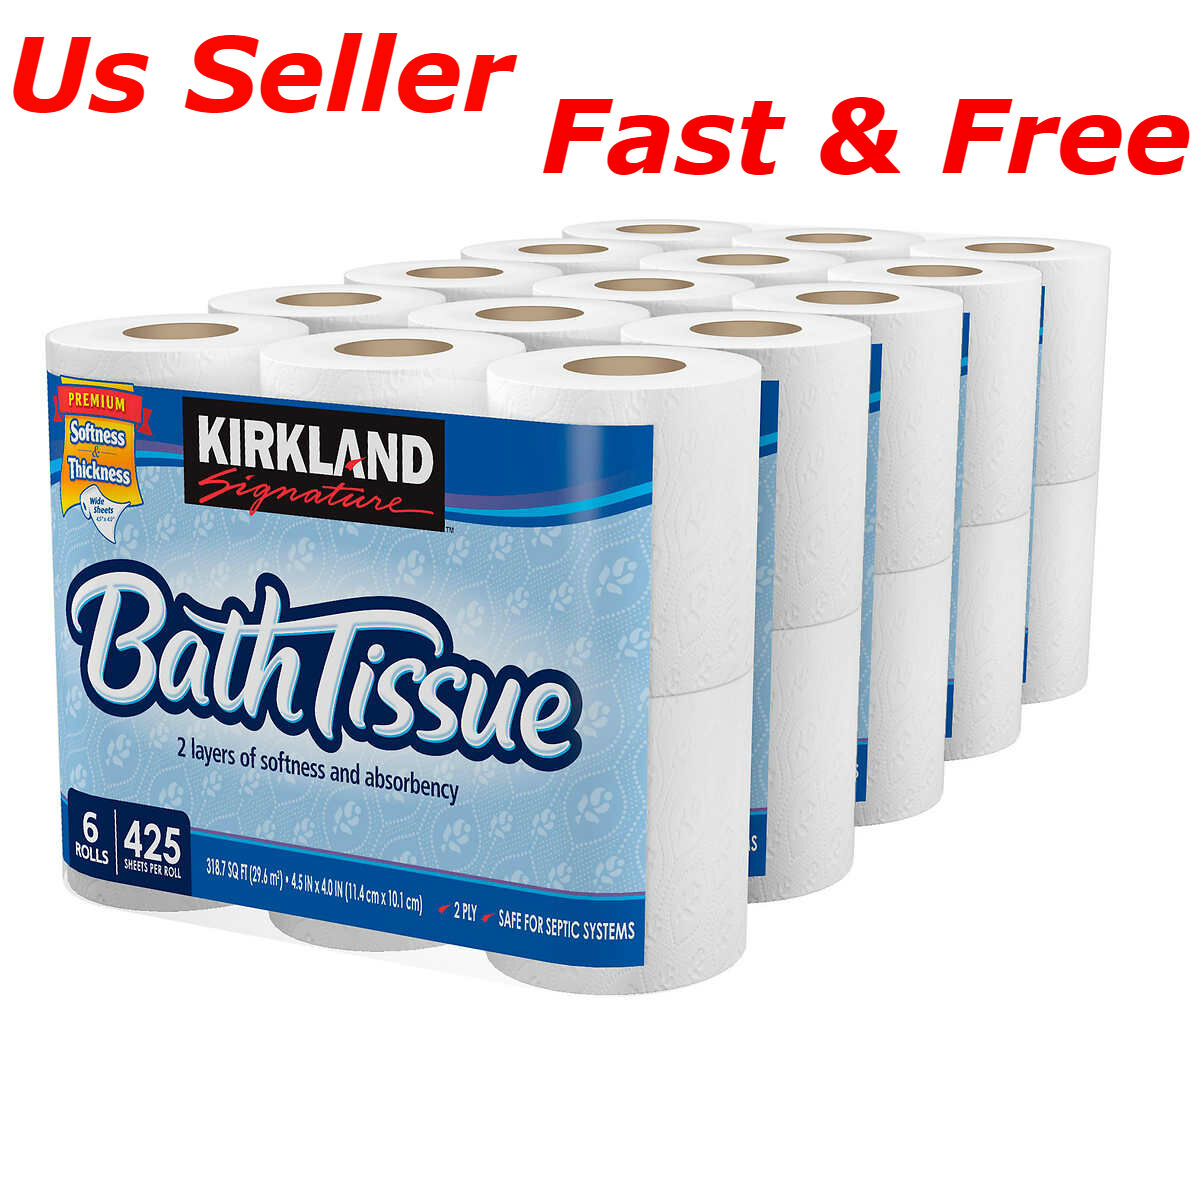 30 Rolls of Kirkland Signature Bath Tissue 2ply Toilet Paper 425 ...